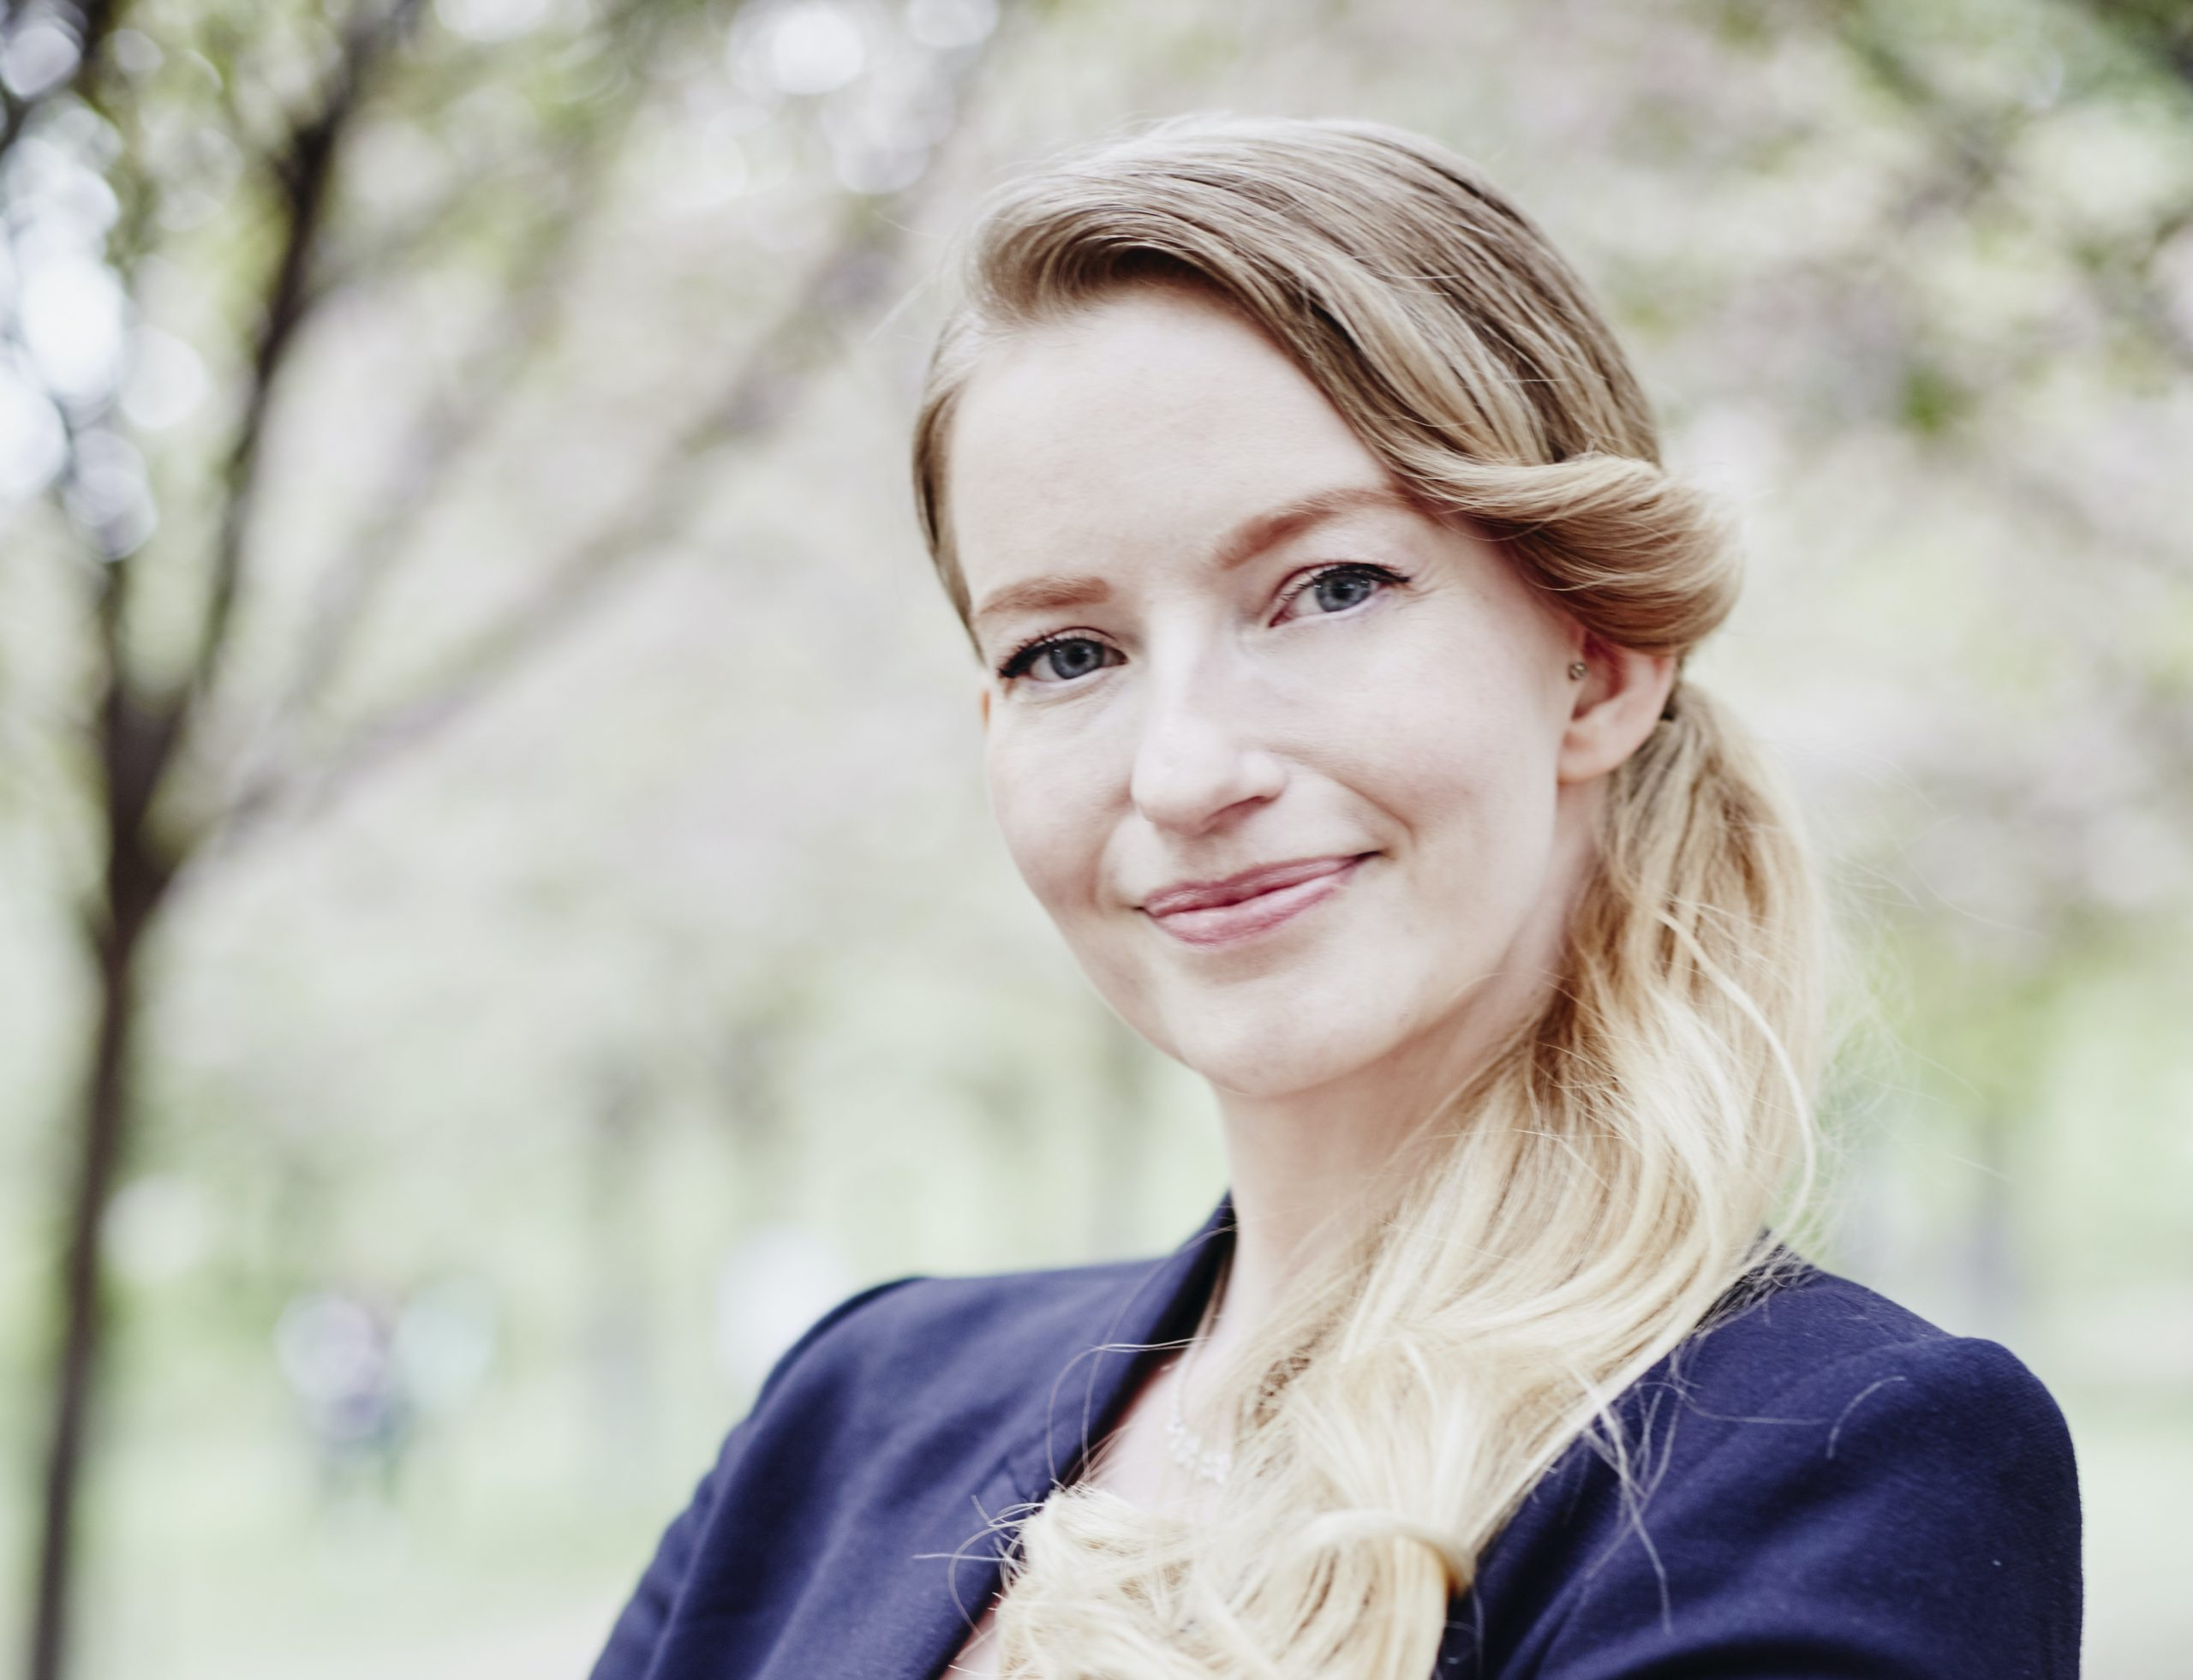 Laura Tirkkonen-Rajasalo is Sulapac's co-founder and R&D director